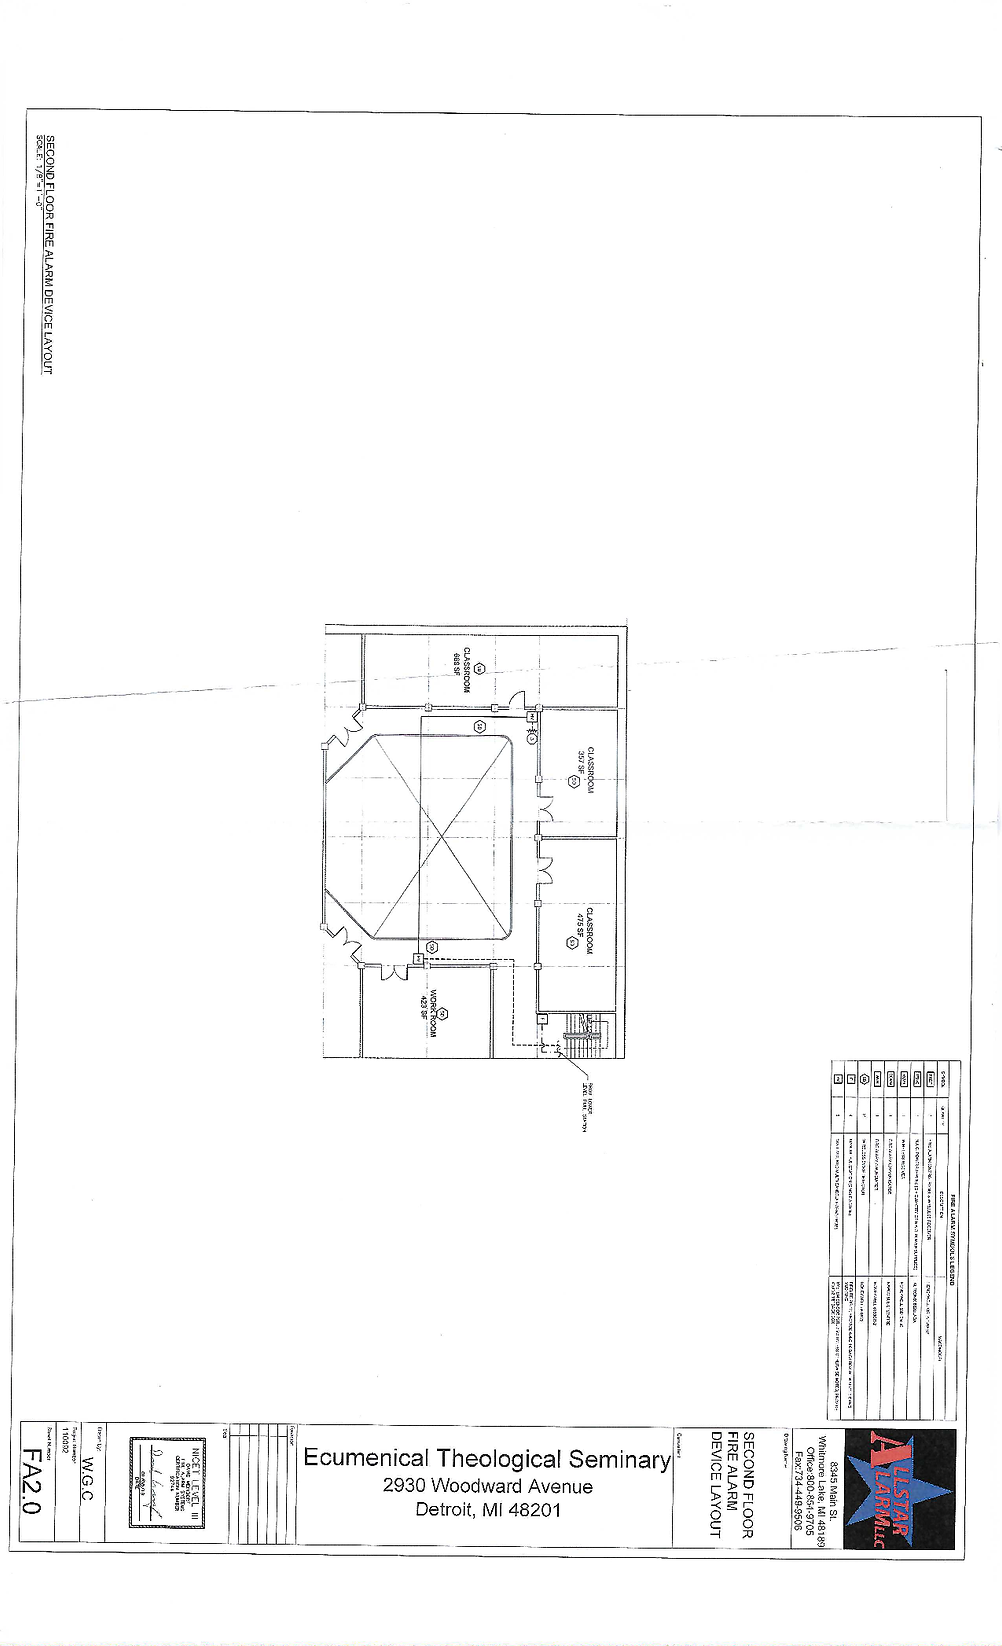 Rev Floor Plan Layout 12.2020-2.png